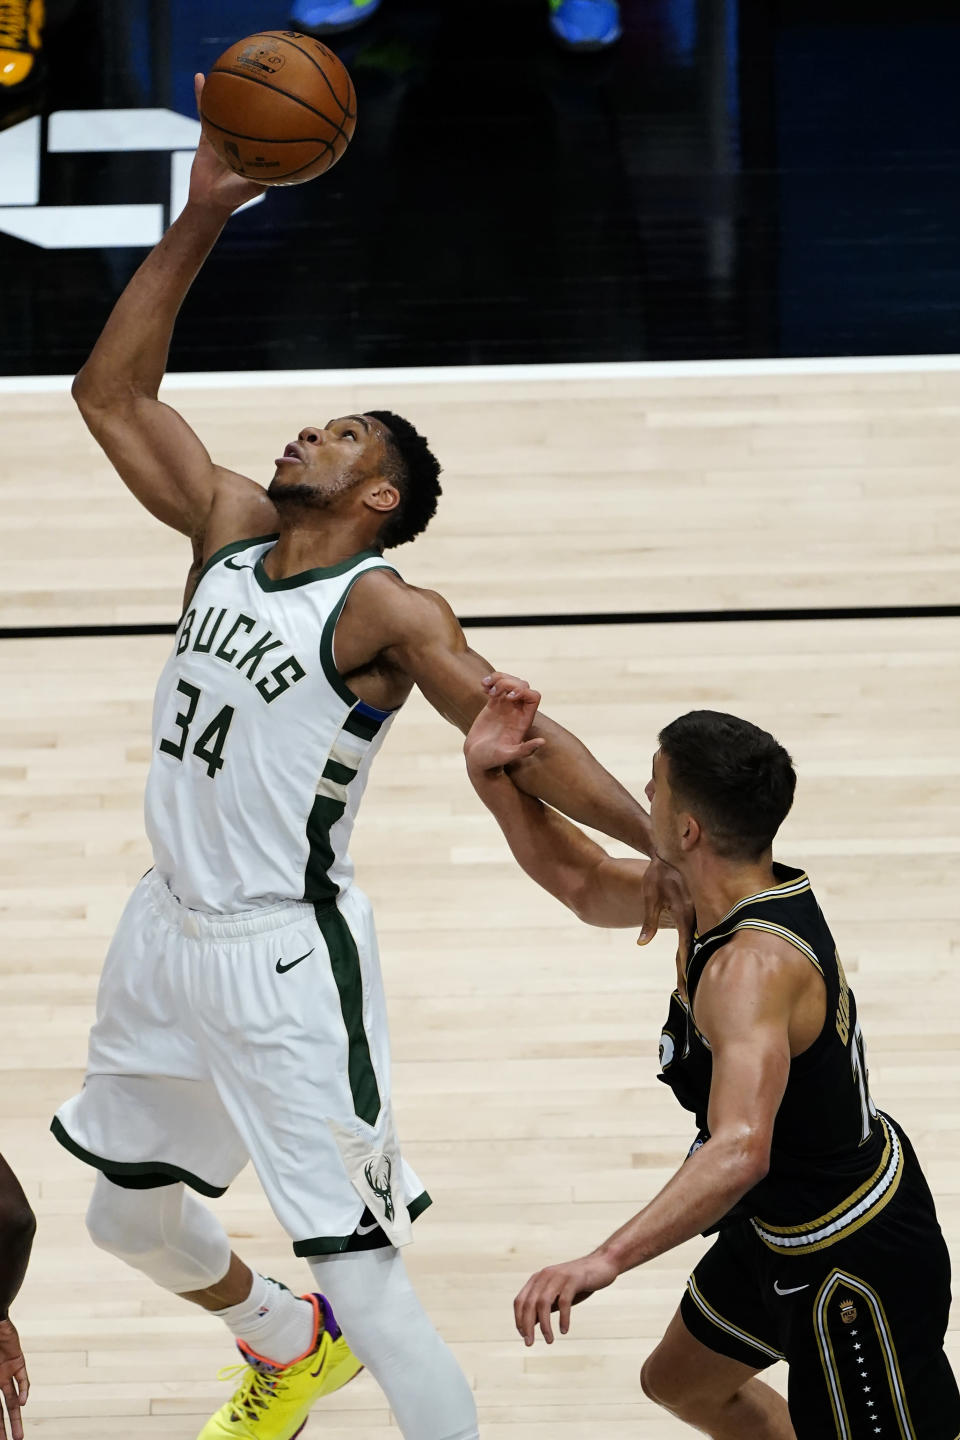 Milwaukee Bucks forward Giannis Antetokounmpo (34) reaches for the ball next to Atlanta Hawks guard Bogdan Bogdanovic (13) during the first half of an NBA basketball game Thursday, April 15, 2021, in Atlanta. (AP Photo/John Bazemore)